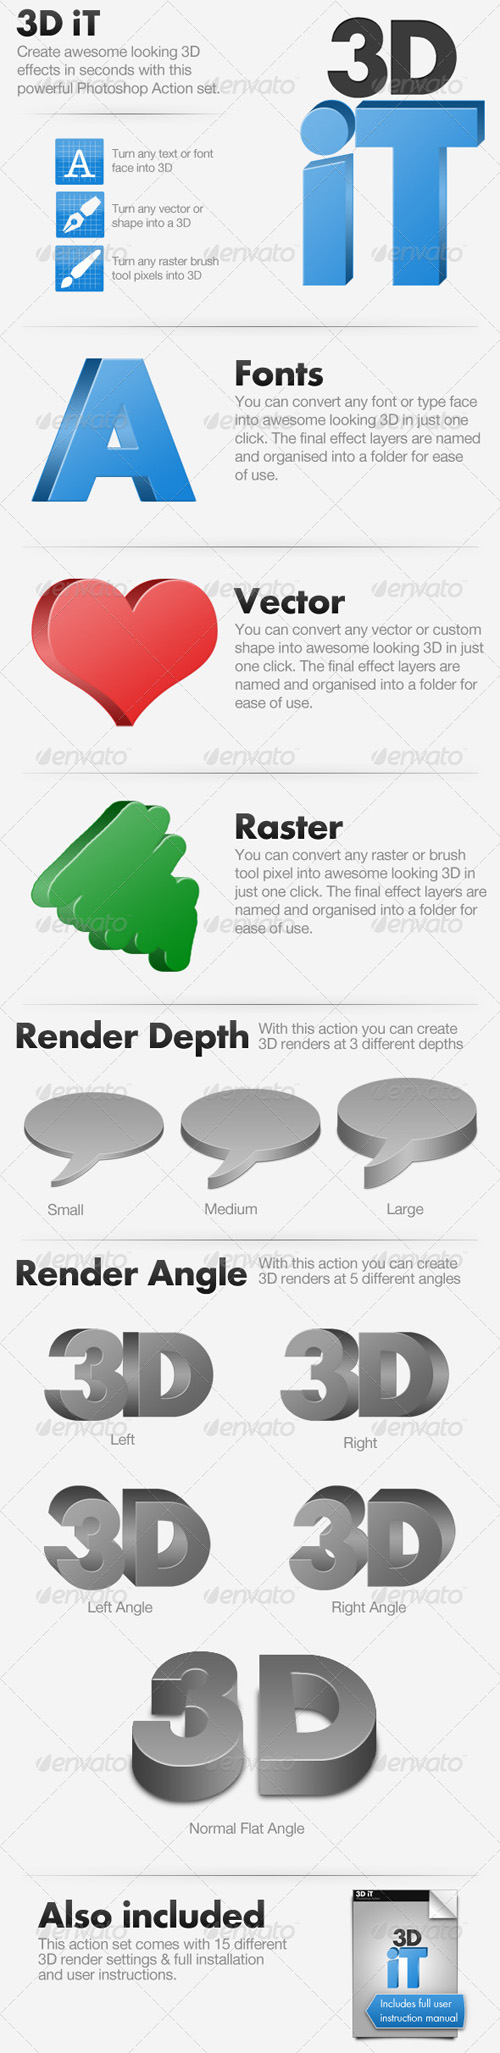 GraphicRiver - 15 3D Rendering Actions for Photoshop